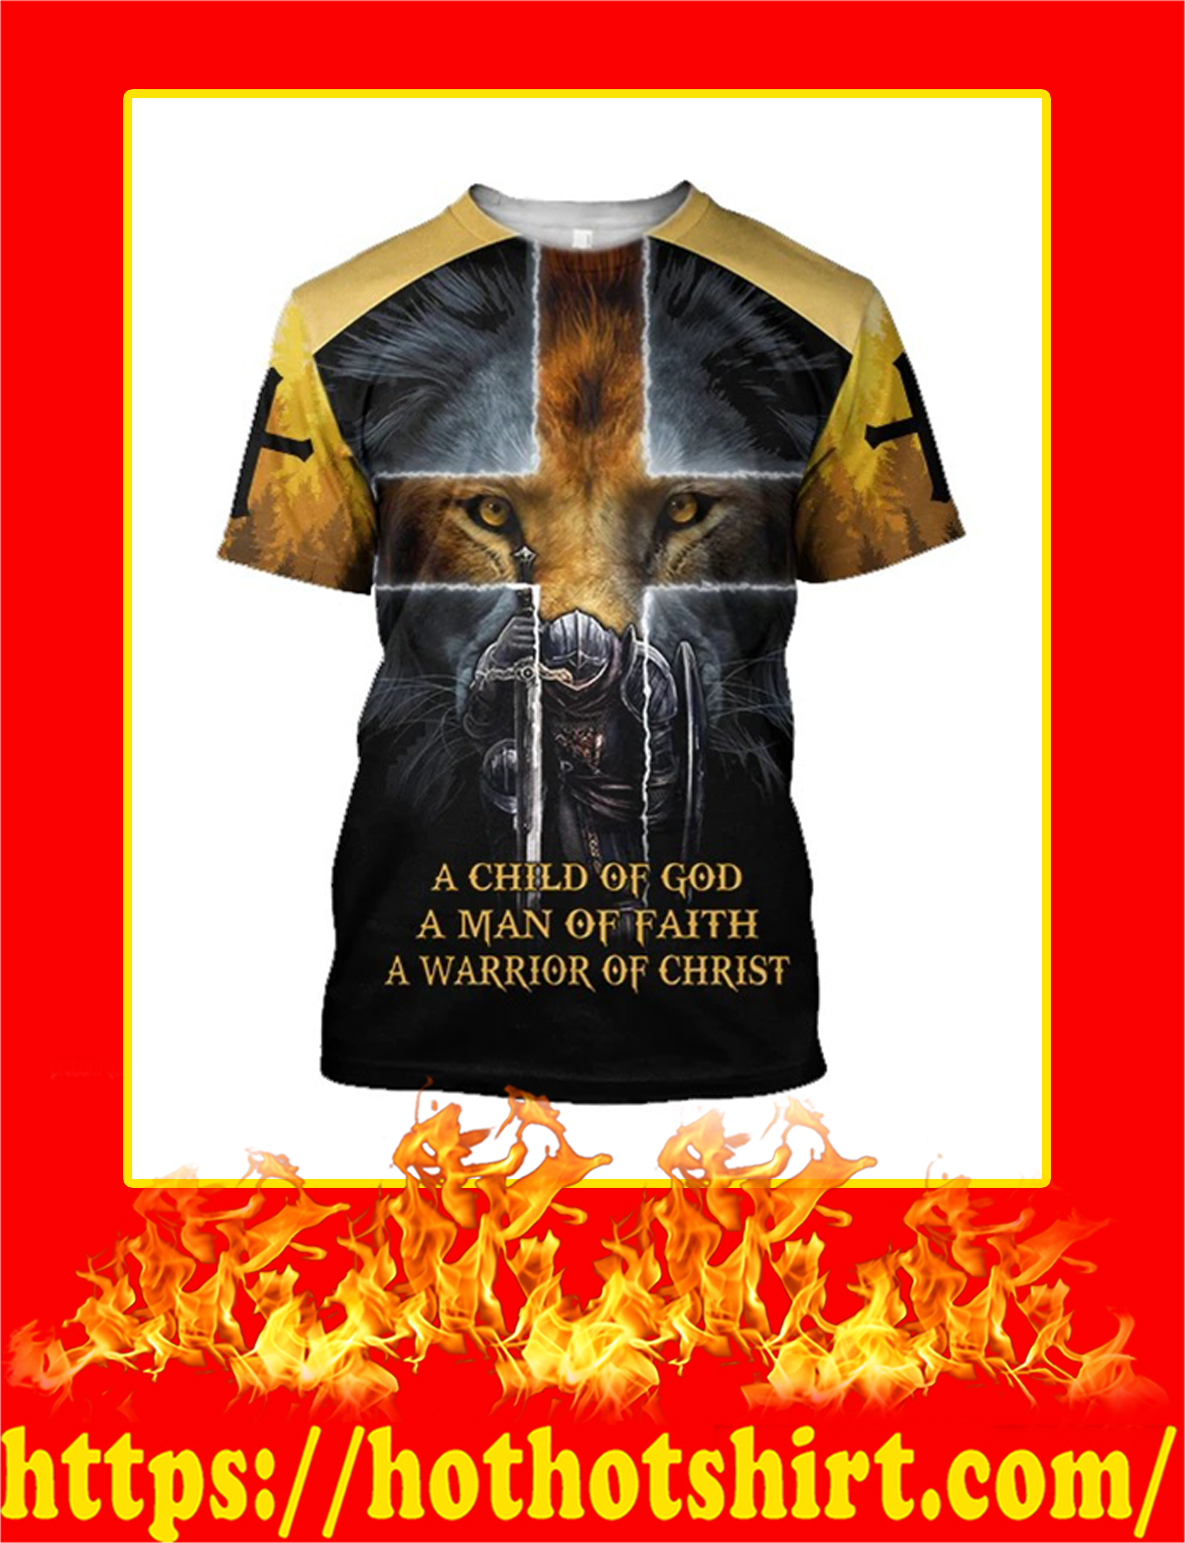 Knight Templar Jesus Lion A Child Of God 3D All Over Printed shirt